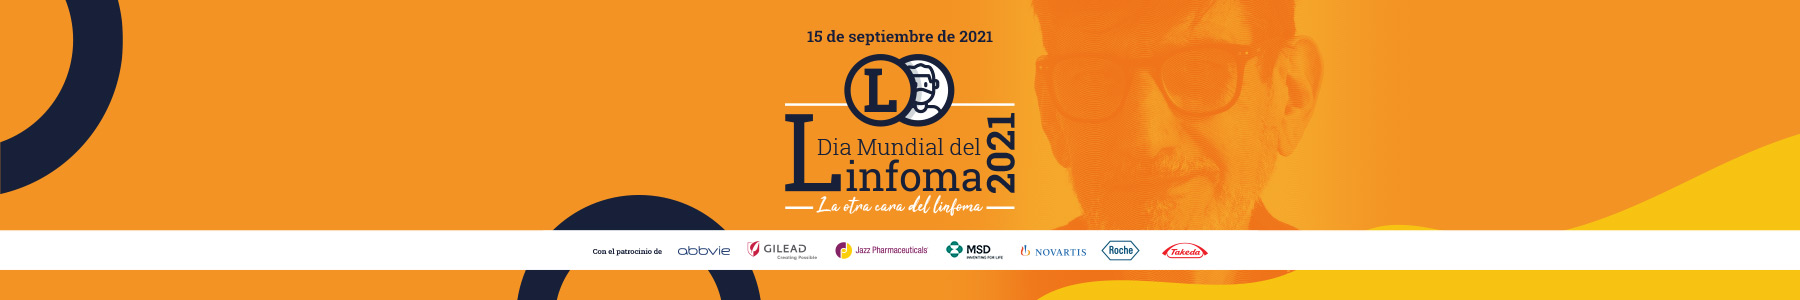 banners_dm_linfoma_aeal_2021_web_aeal